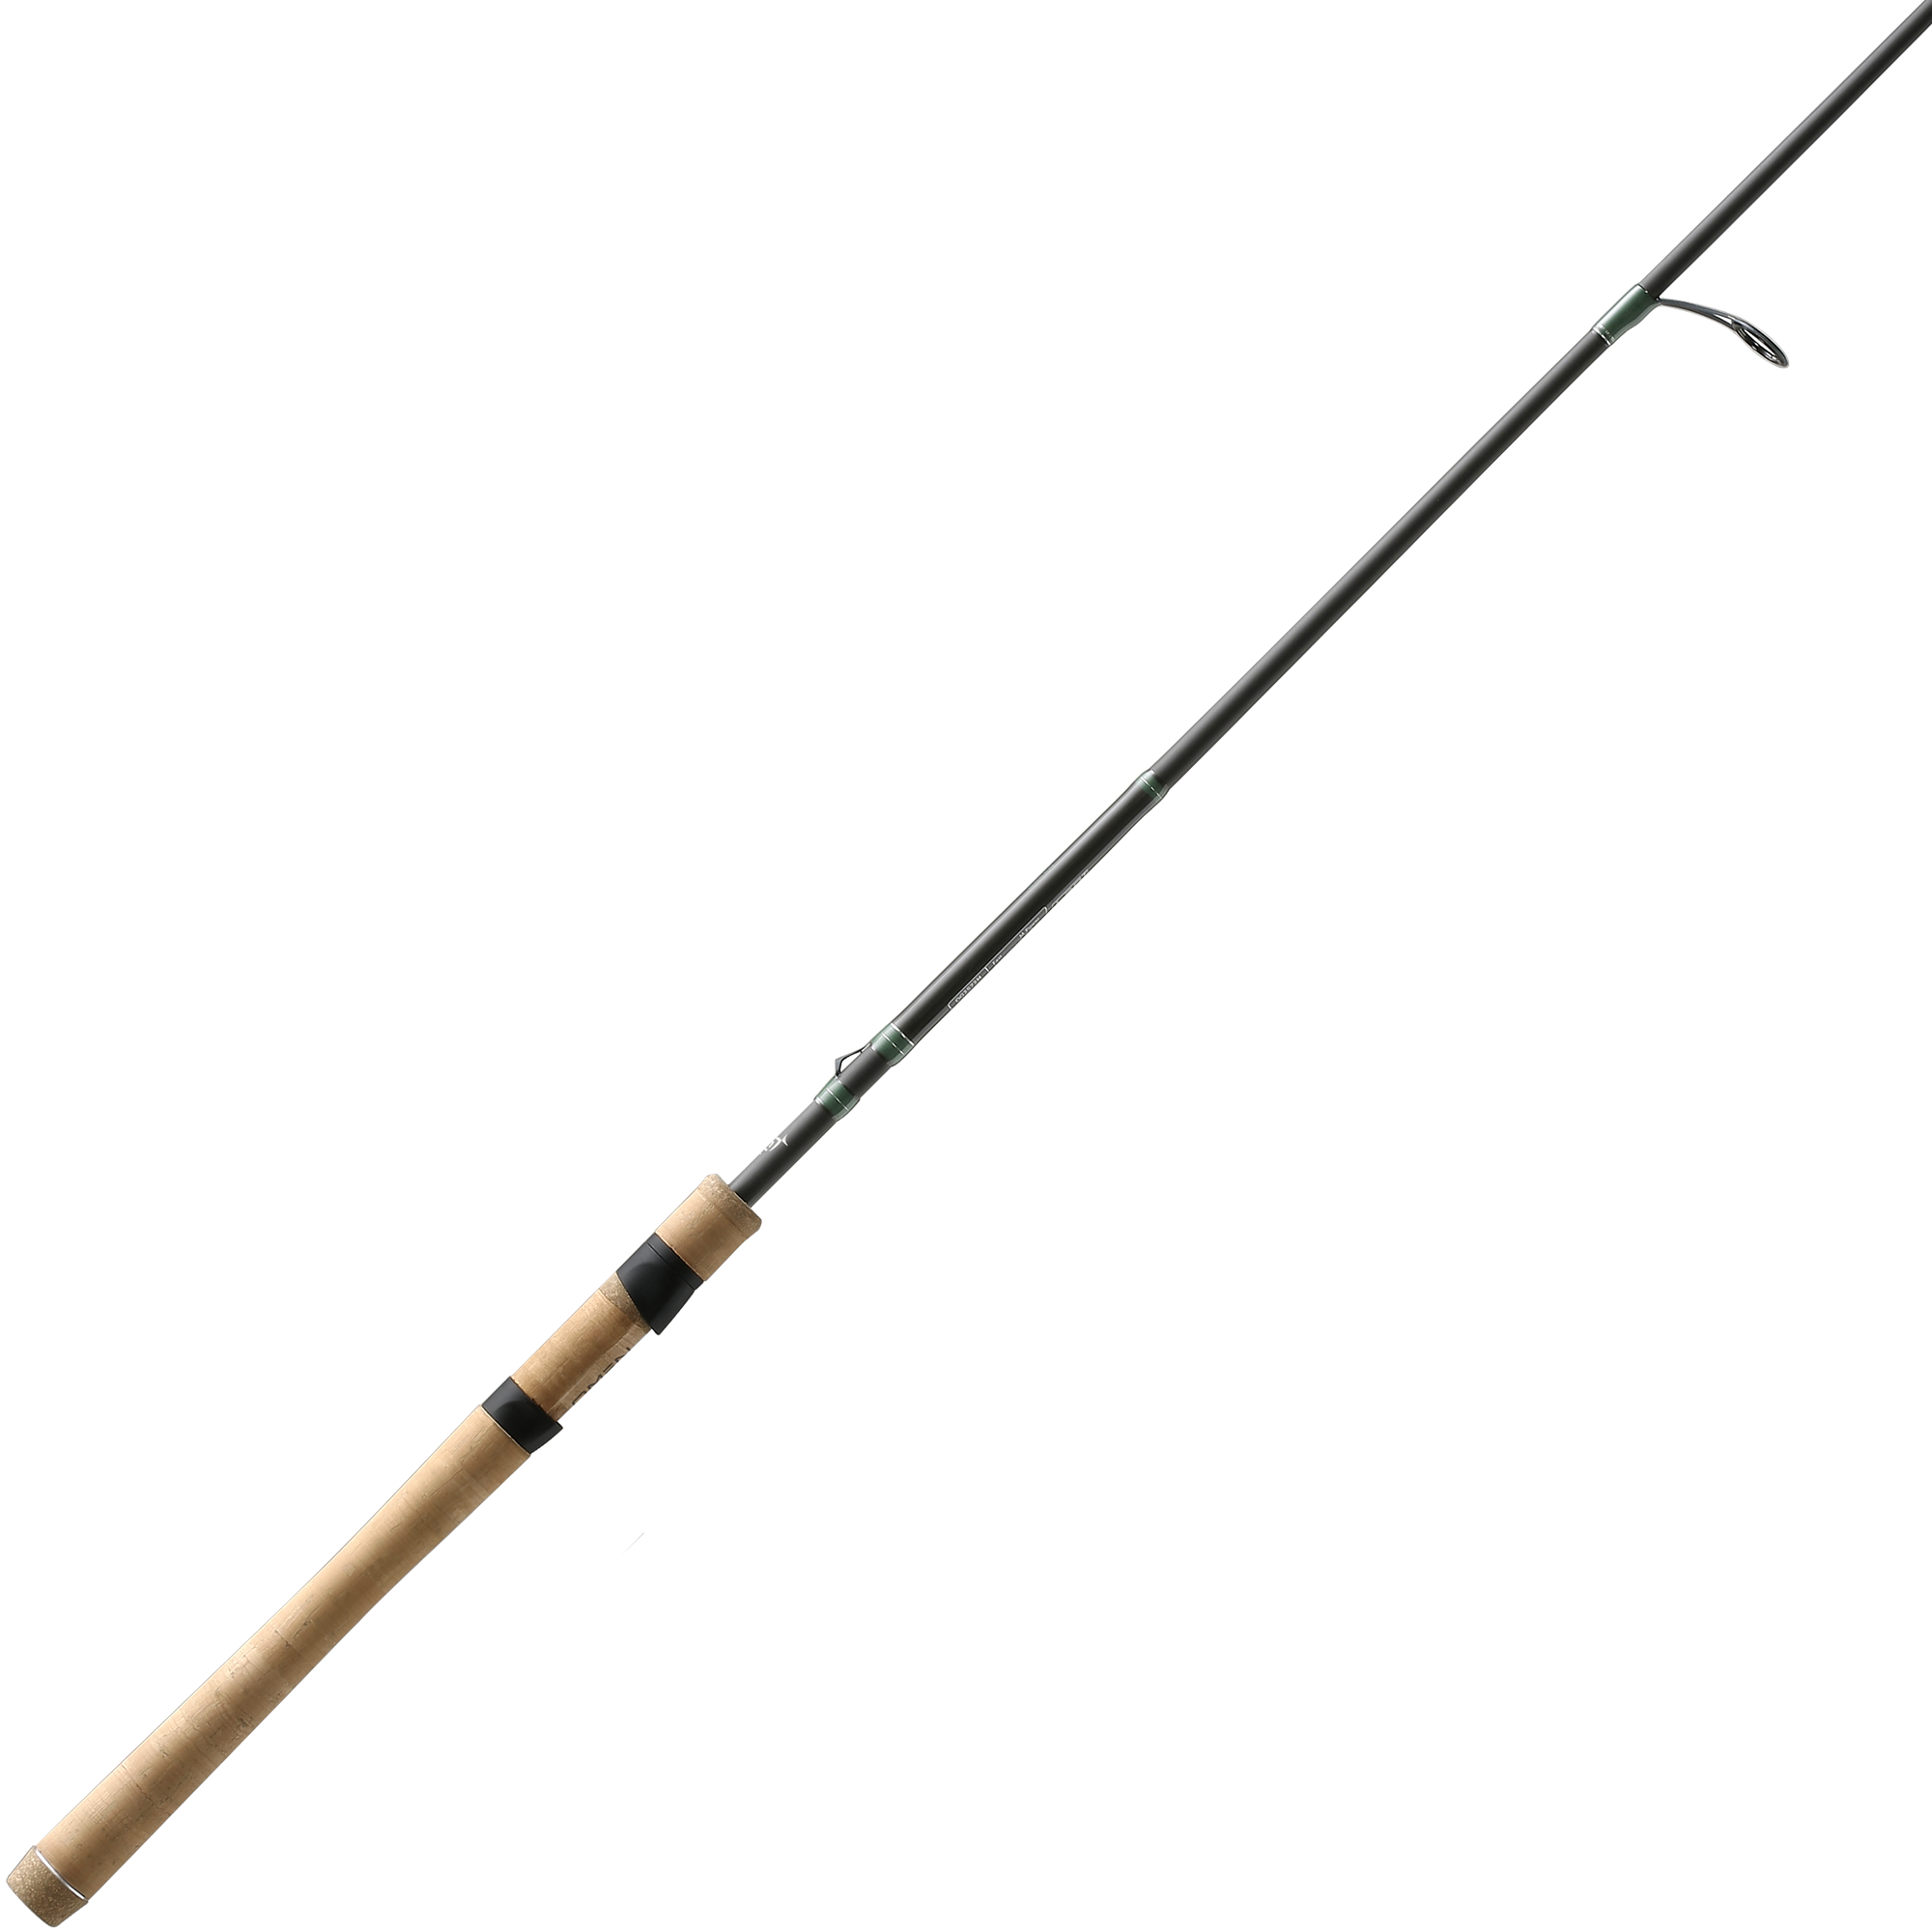 13 Fishing Omen Green 2 Inshore Spinning Rod